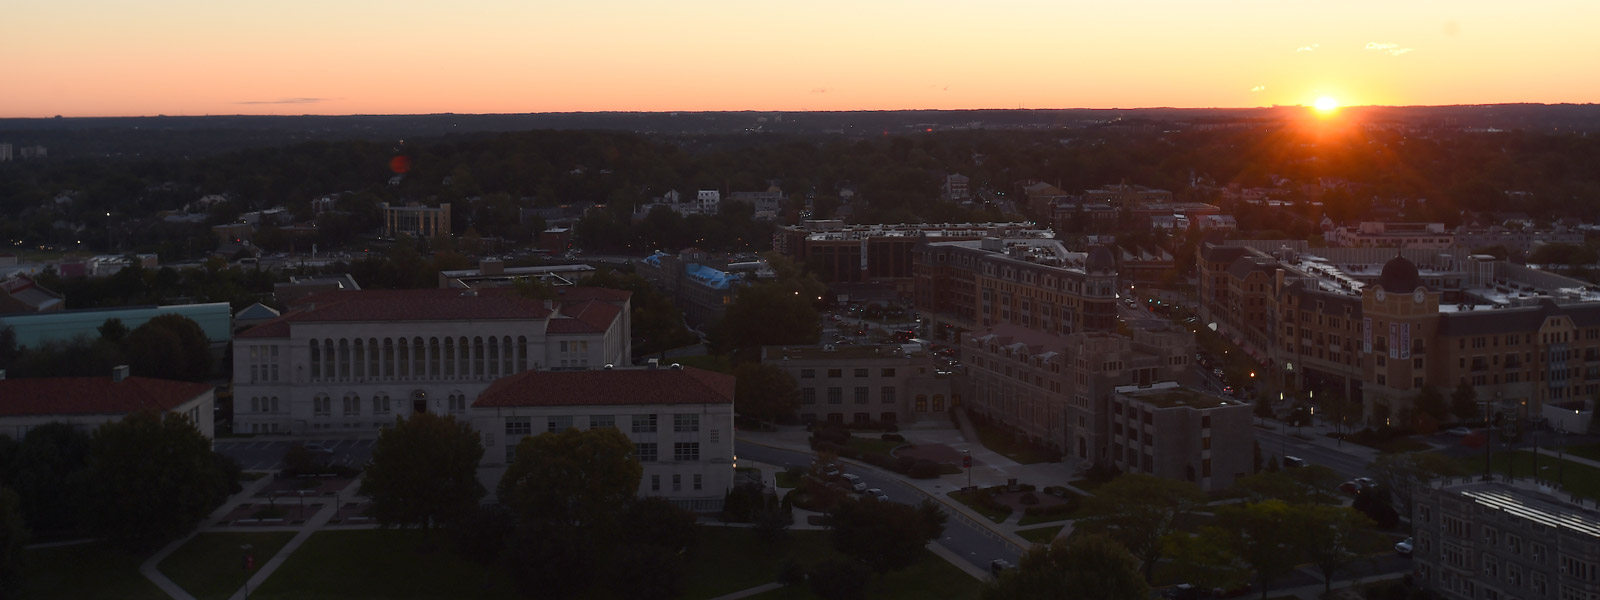 sunrise at Catholic University